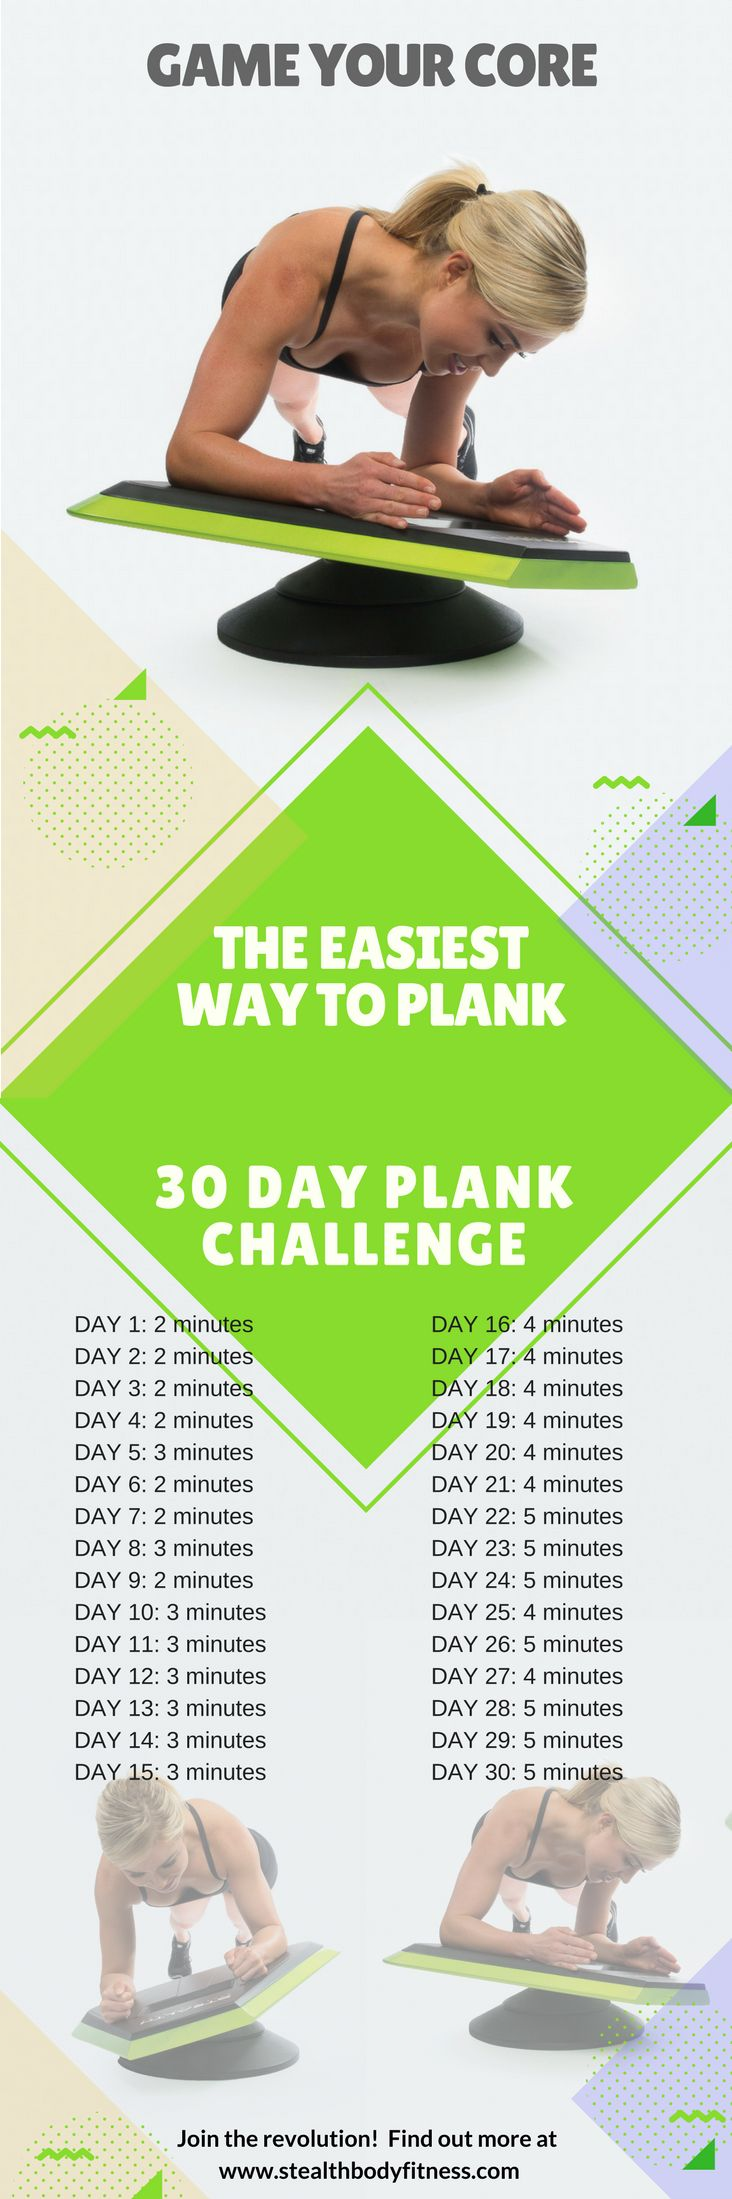 The Intense Plank Workout at Home. Great For All Levels including Beginners. This is a fun, easy and intense plank workout at home to keep you in shape this summer.  The new way to workout fast! Planking is a full body workout and helps you with your core strength too! Find out how you can get one in your home.